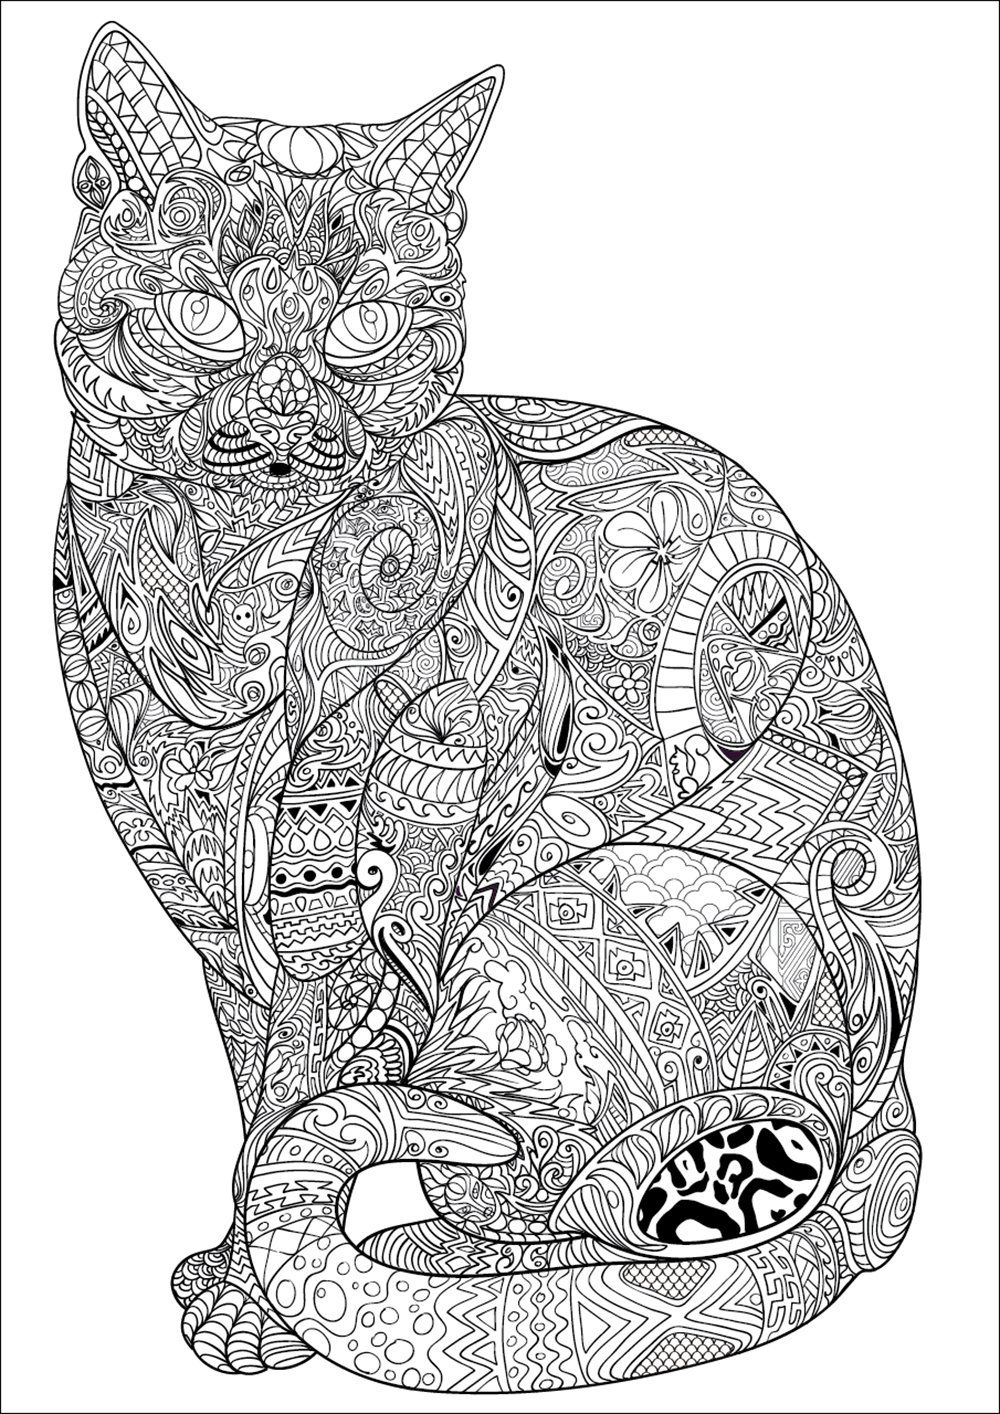 Amazon Fr Nouveau Bestiaire Extraordinaire 100 Coloriages Anti Stress Jean Luc Guerin Livres Cat Coloring Page Animal Coloring Pages Coloring Pages